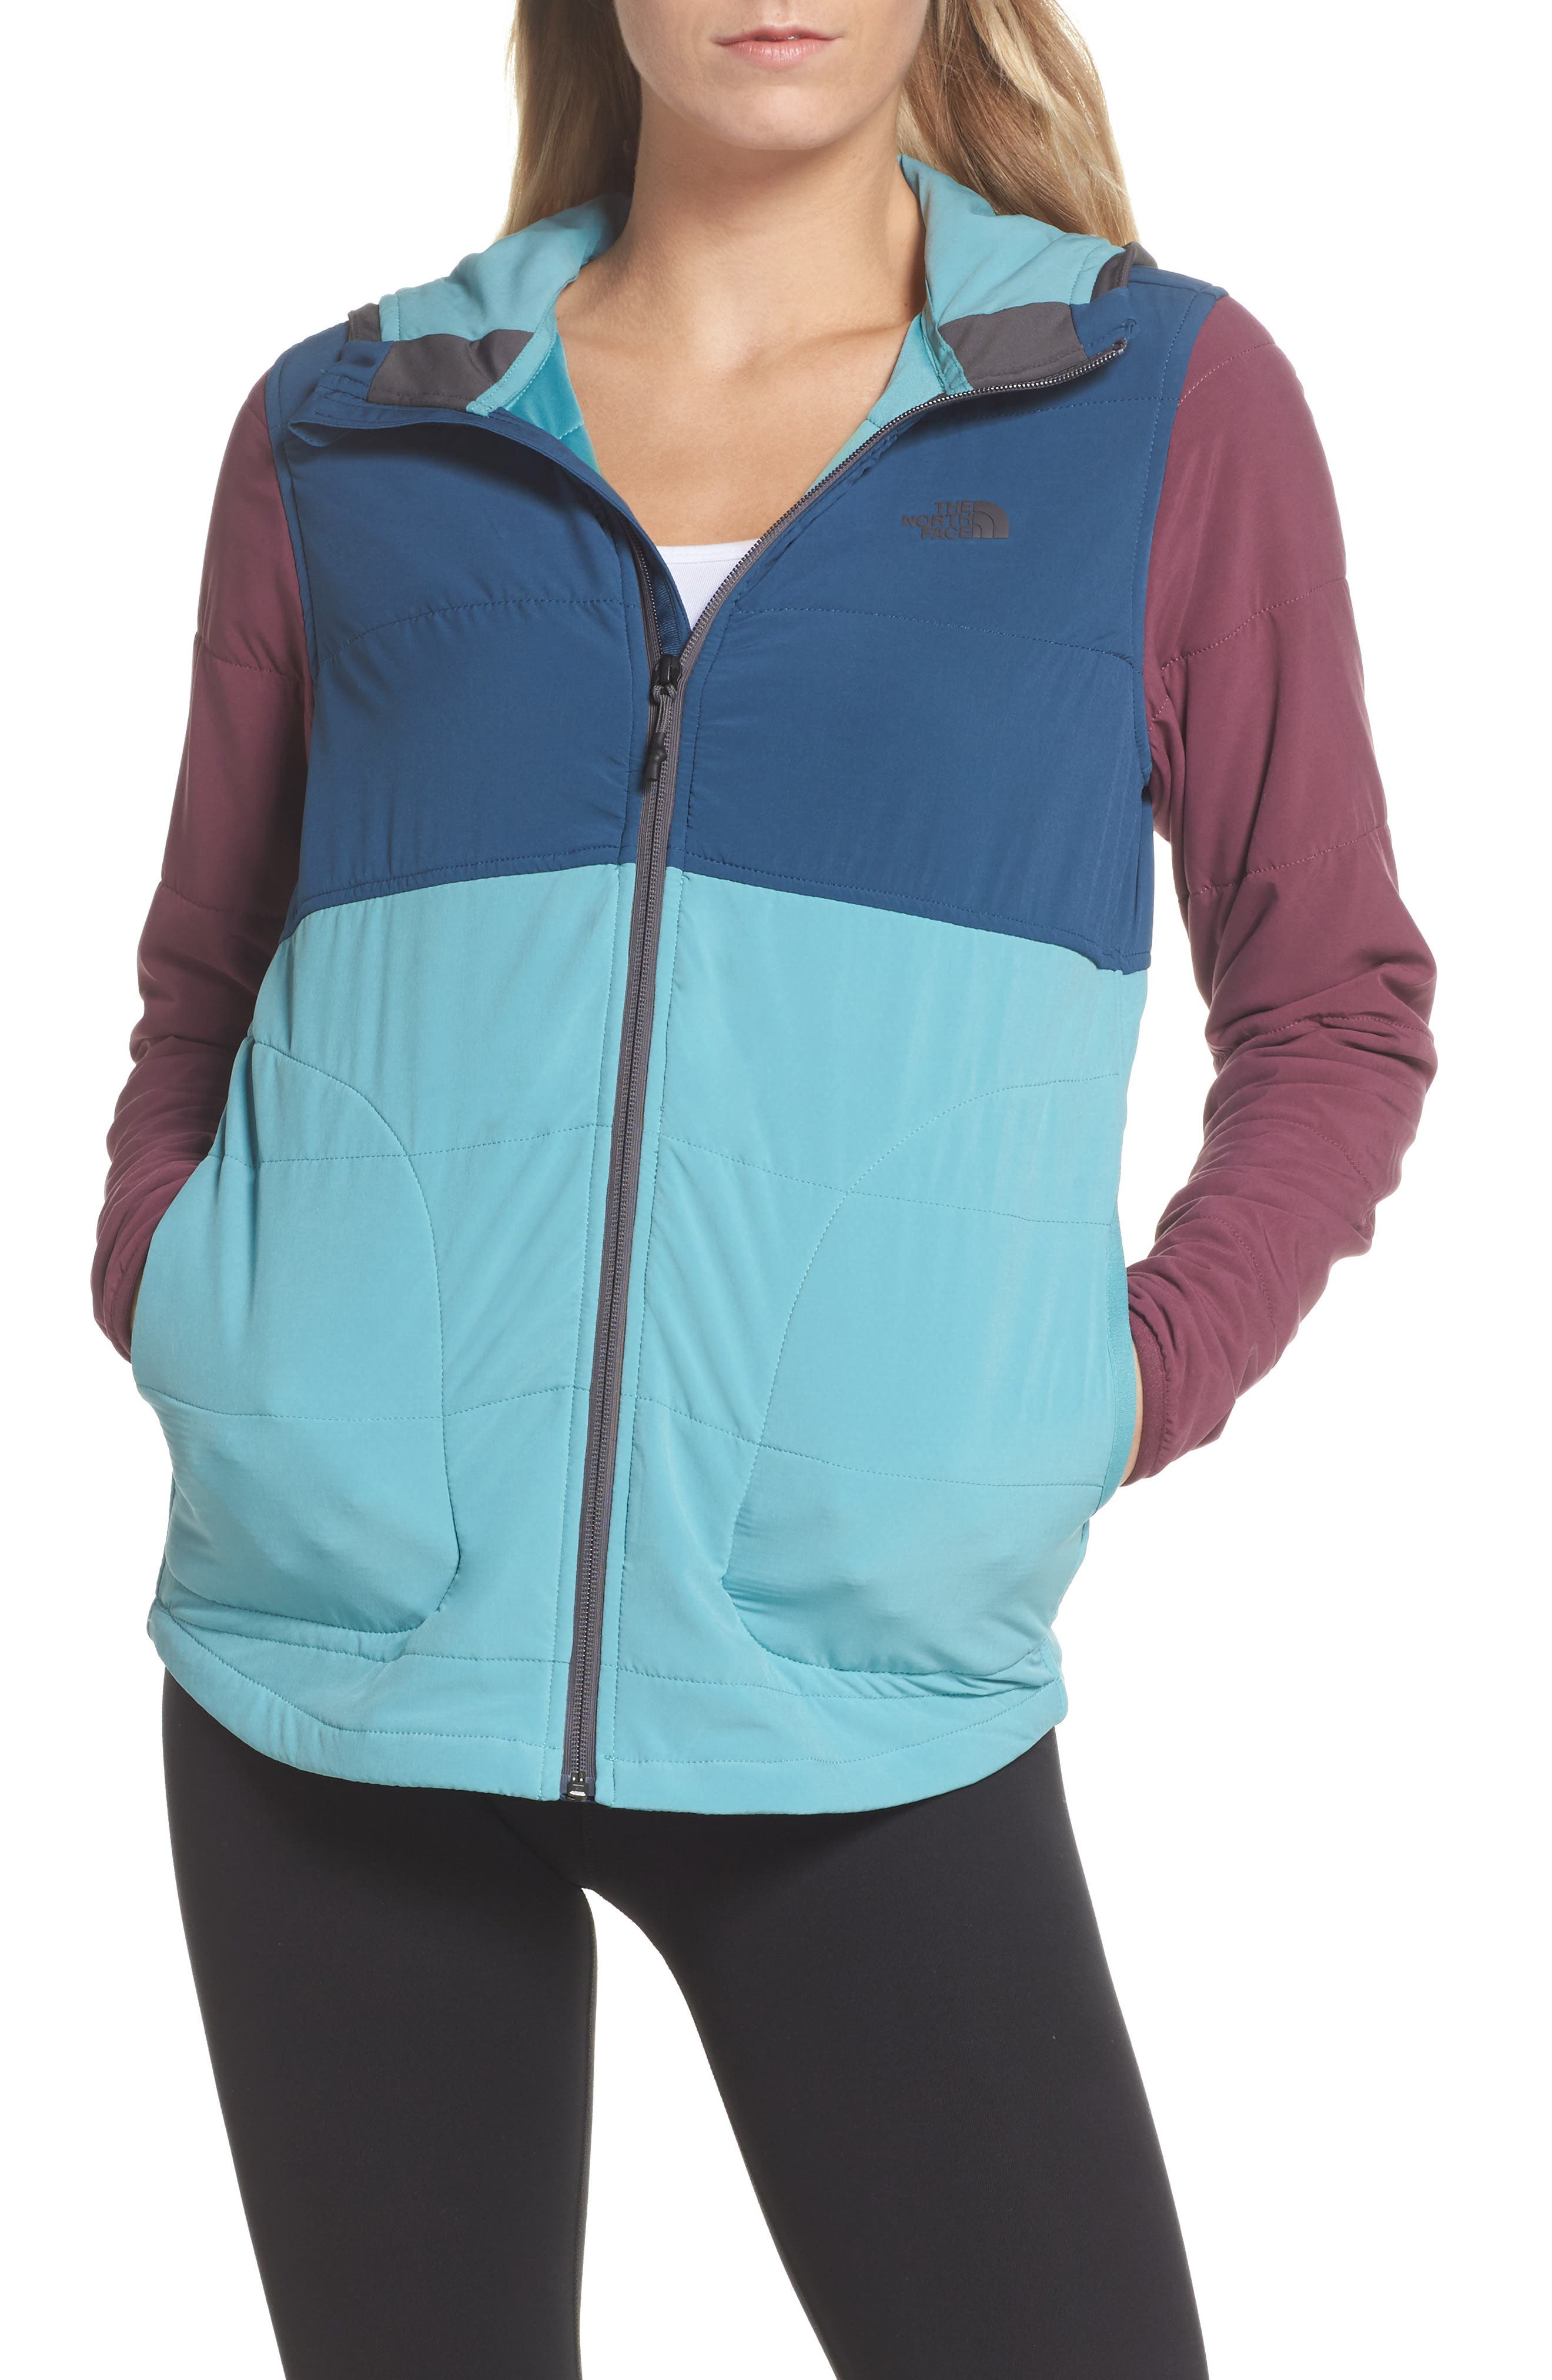 Mountain Sweatshirt Insulated Hooded Jacket,                             Main thumbnail 1, color,                             Bristol Blue Multi